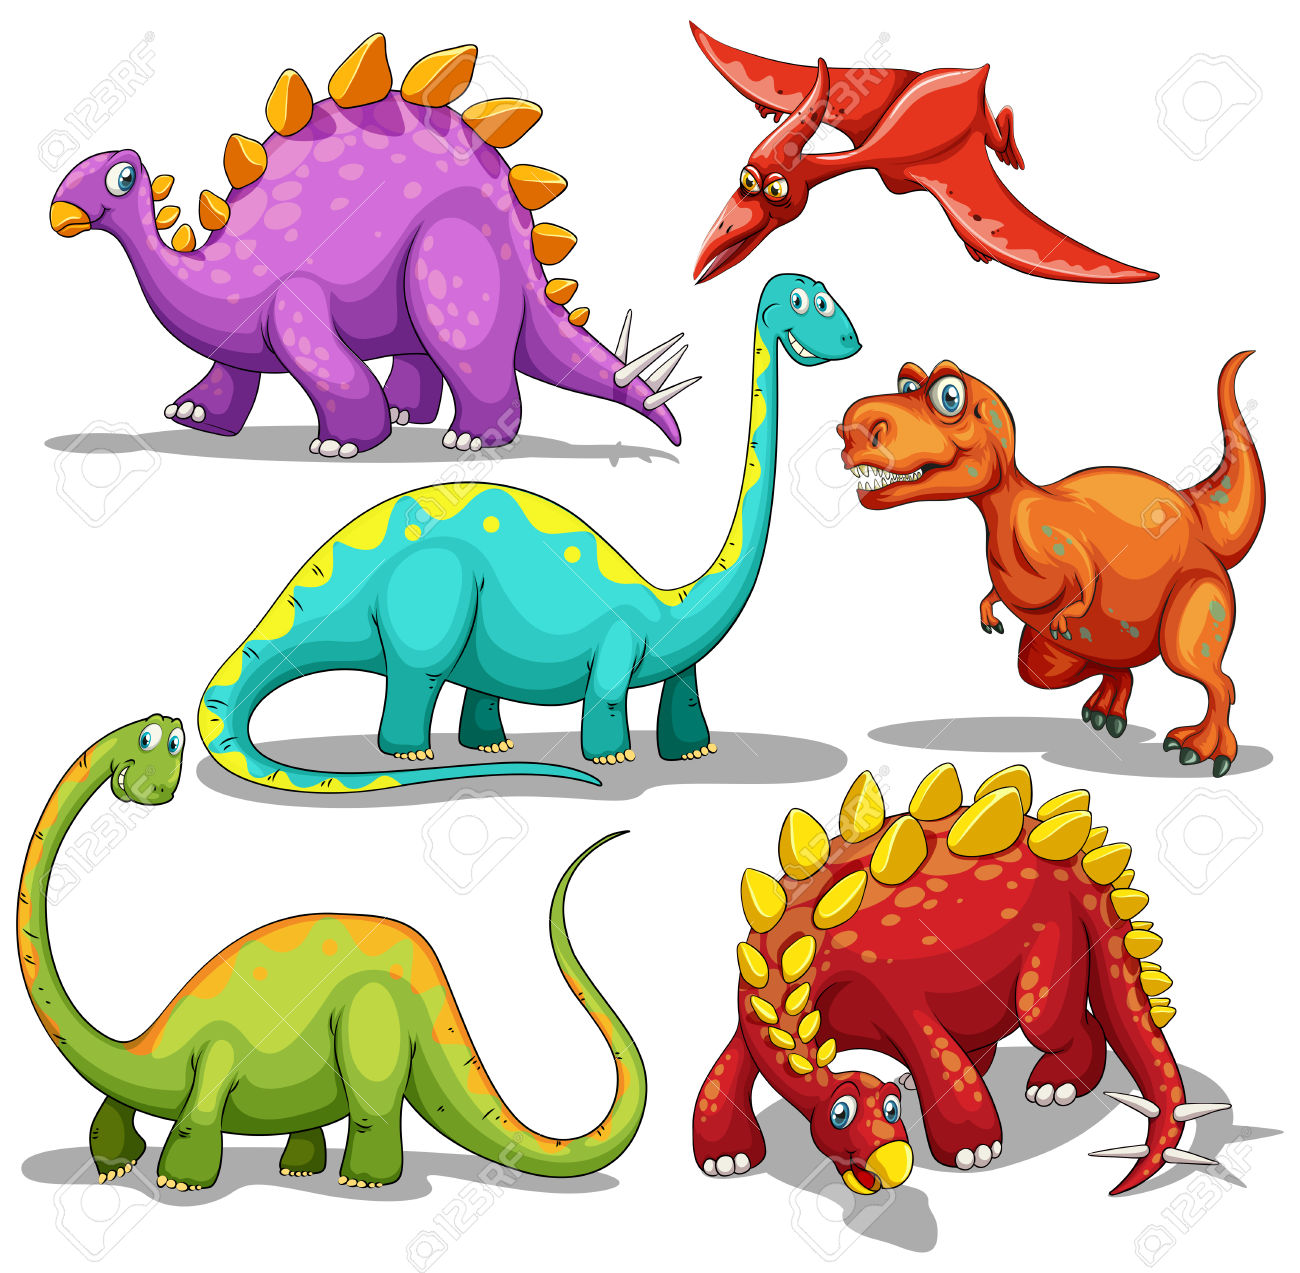 Dinosaurs Clipart | Free download on ClipArtMag (1300 x 1273 Pixel)